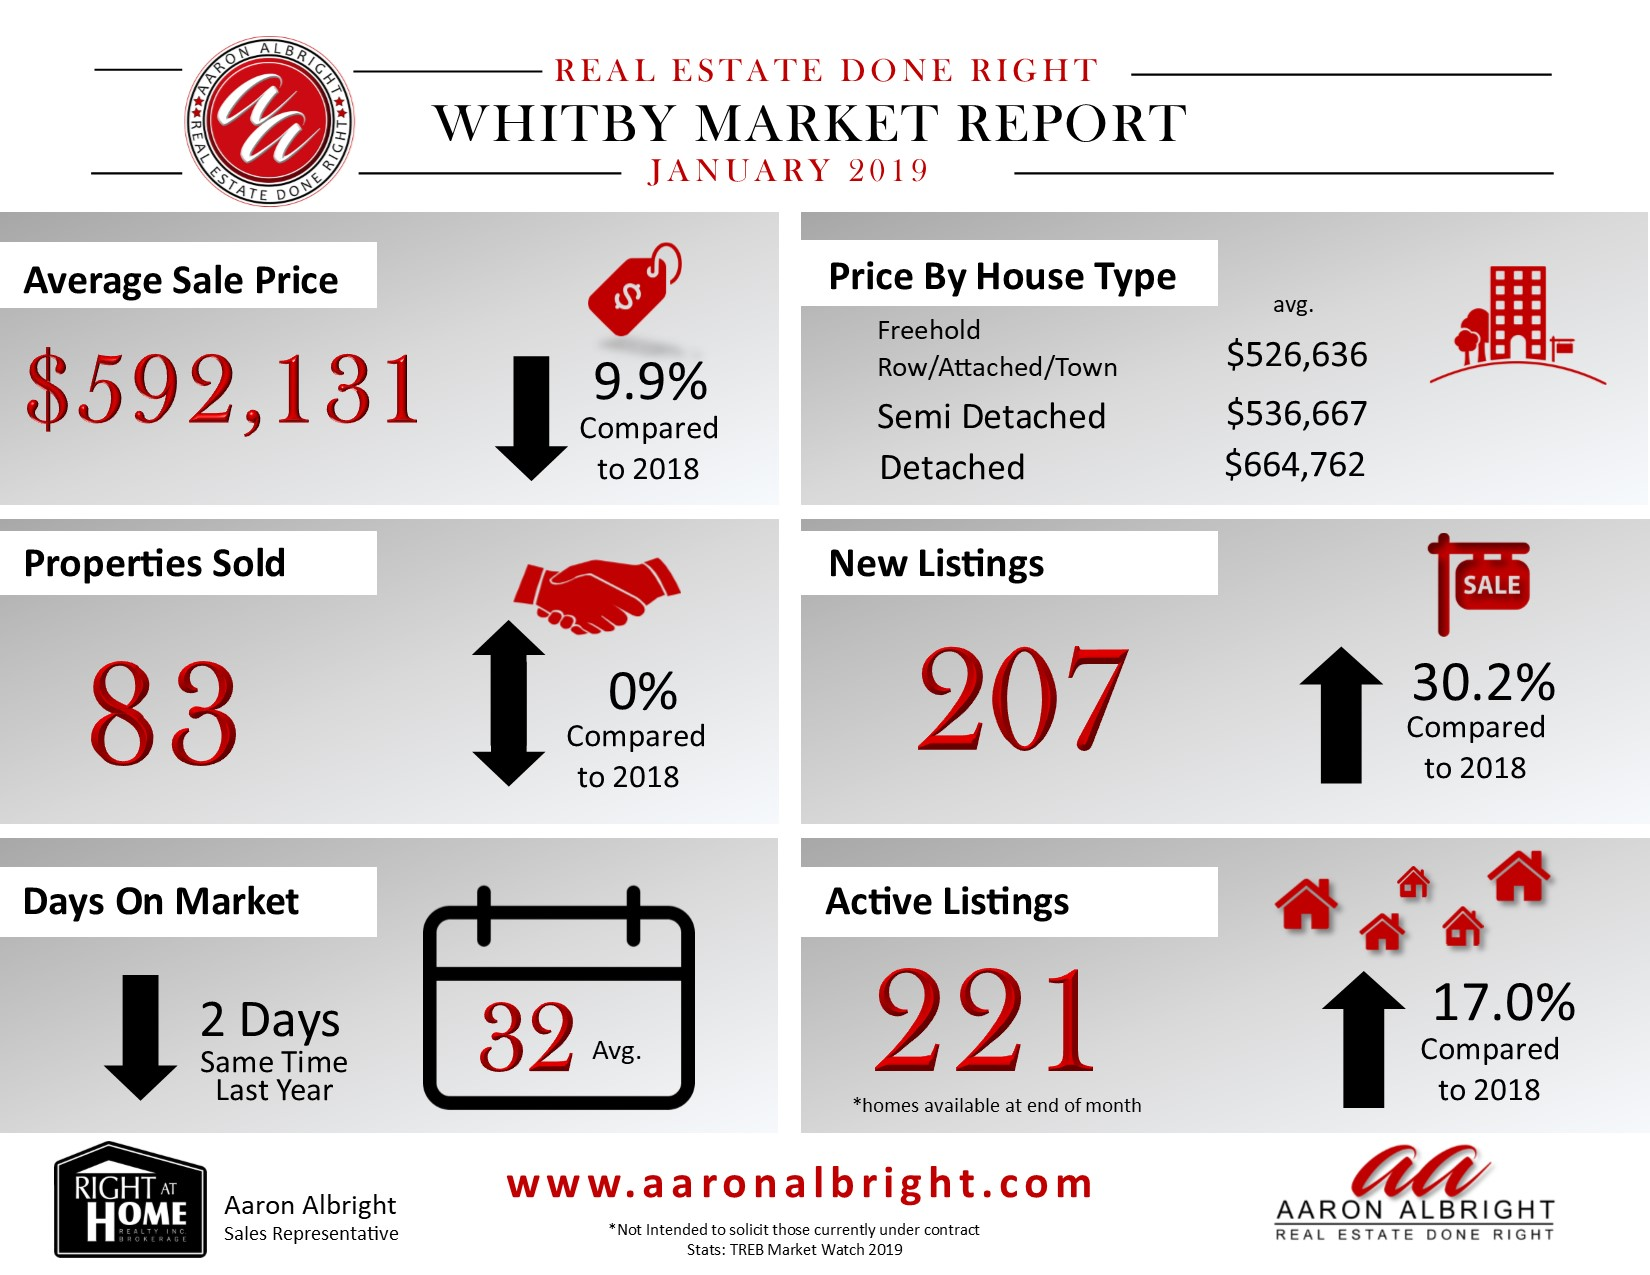 Whitby Real Estate Market Report January 2019